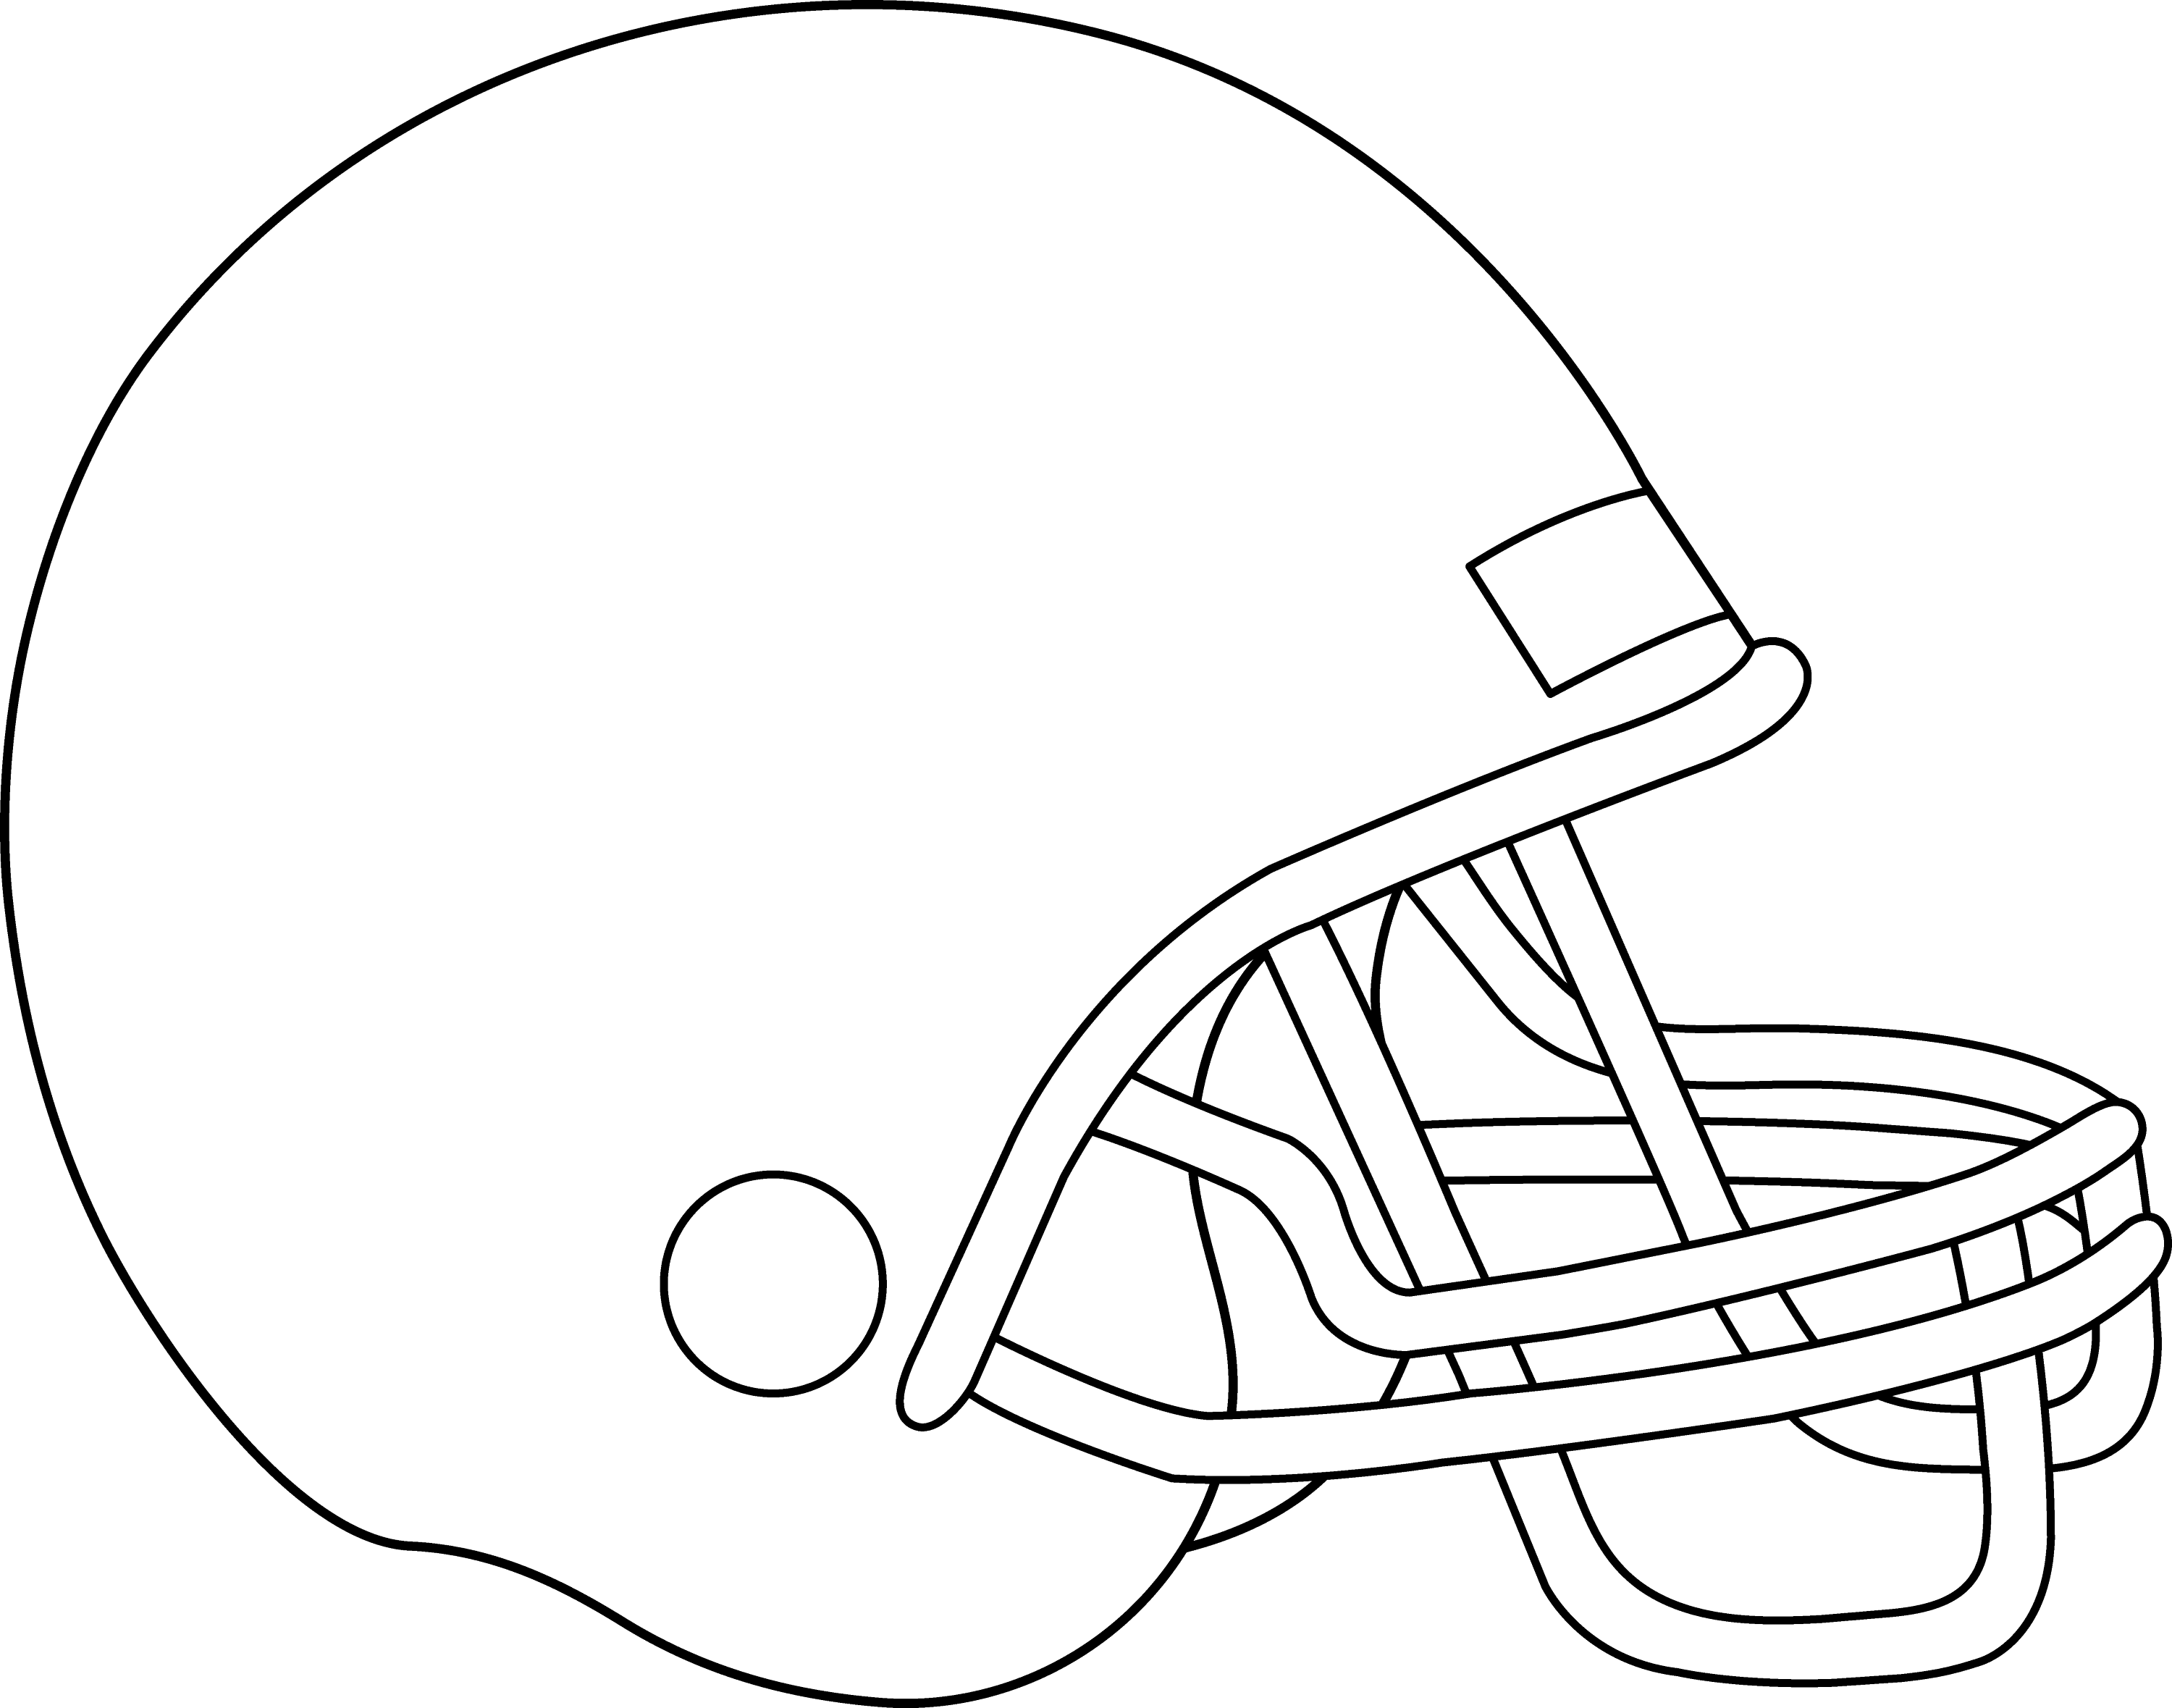 buccaneers helmet coloring pages - photo #49